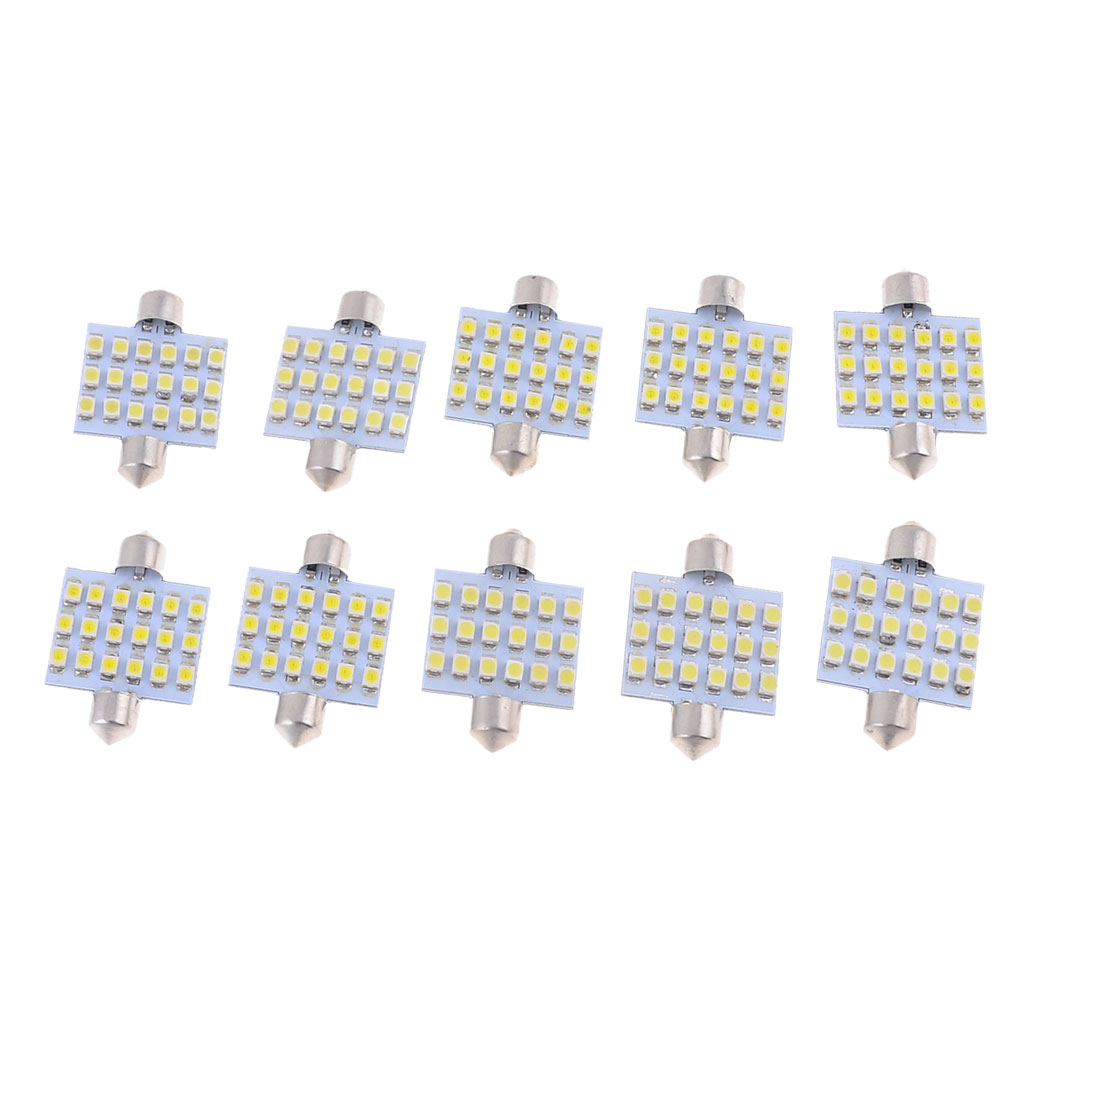 "10 x White 18-SMD 1210 LED 1.54"" 39mm Car Festoon Dome Lights 6423 6461 6418"